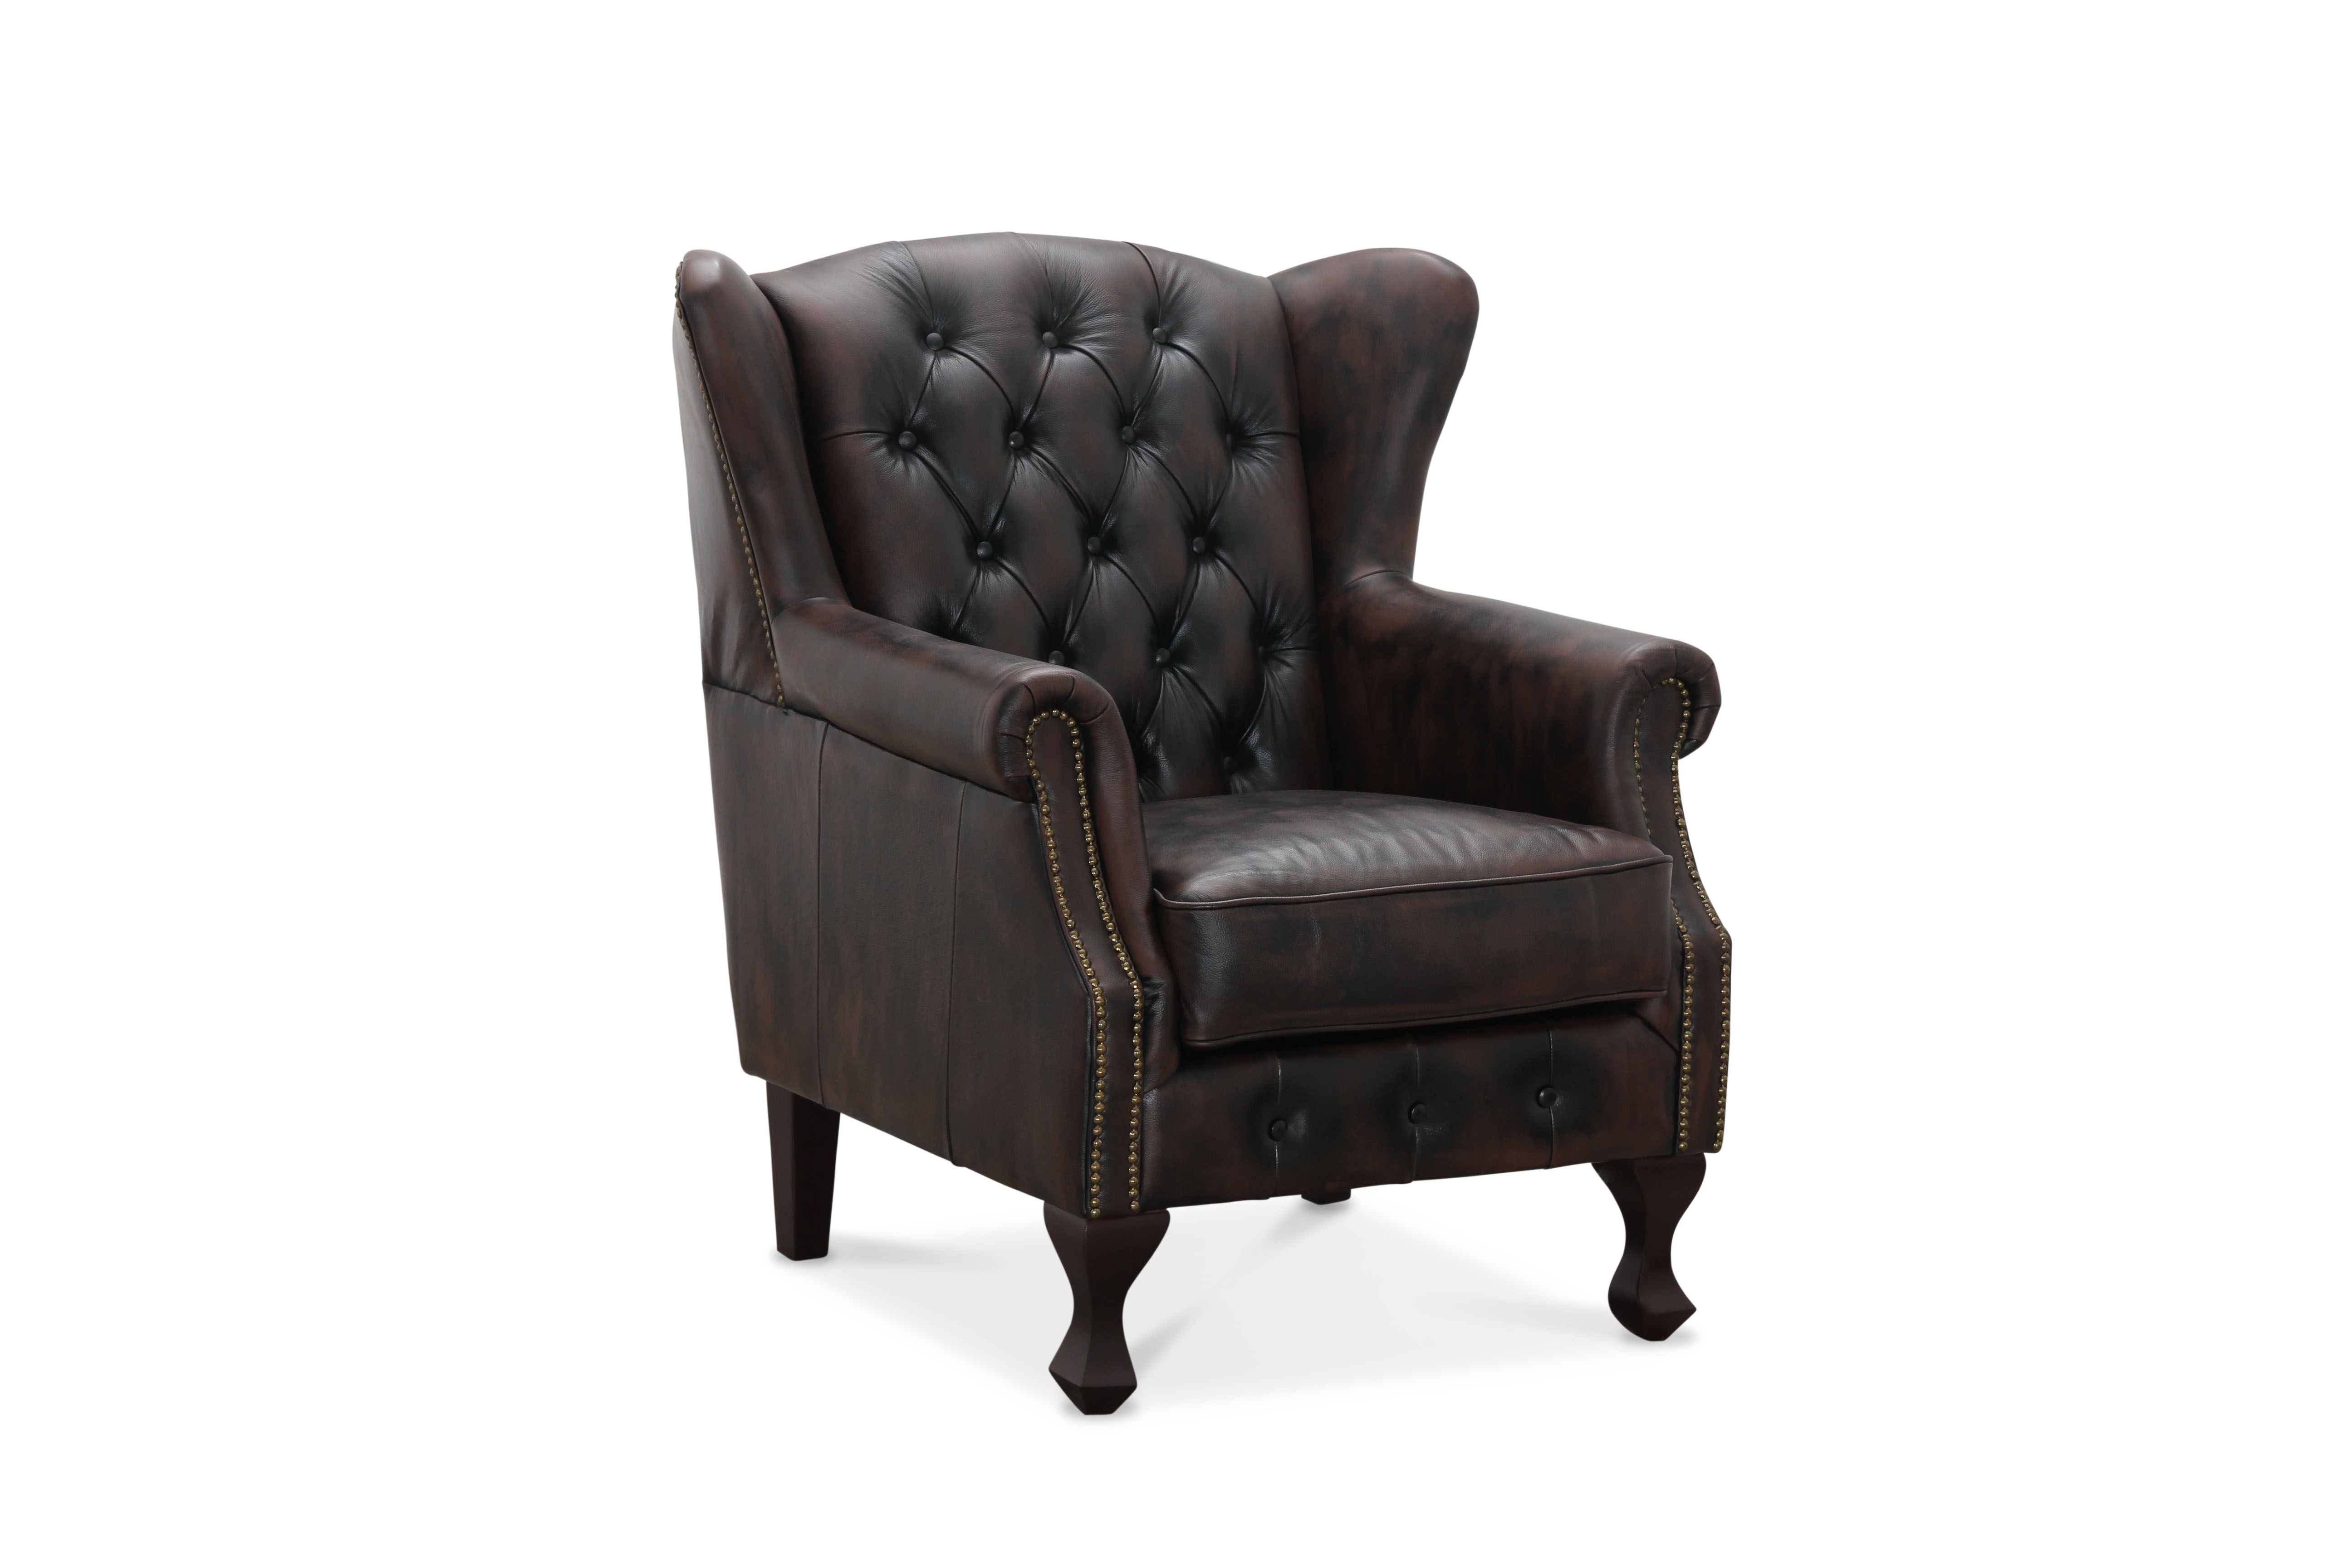 Inverness wingchair brun